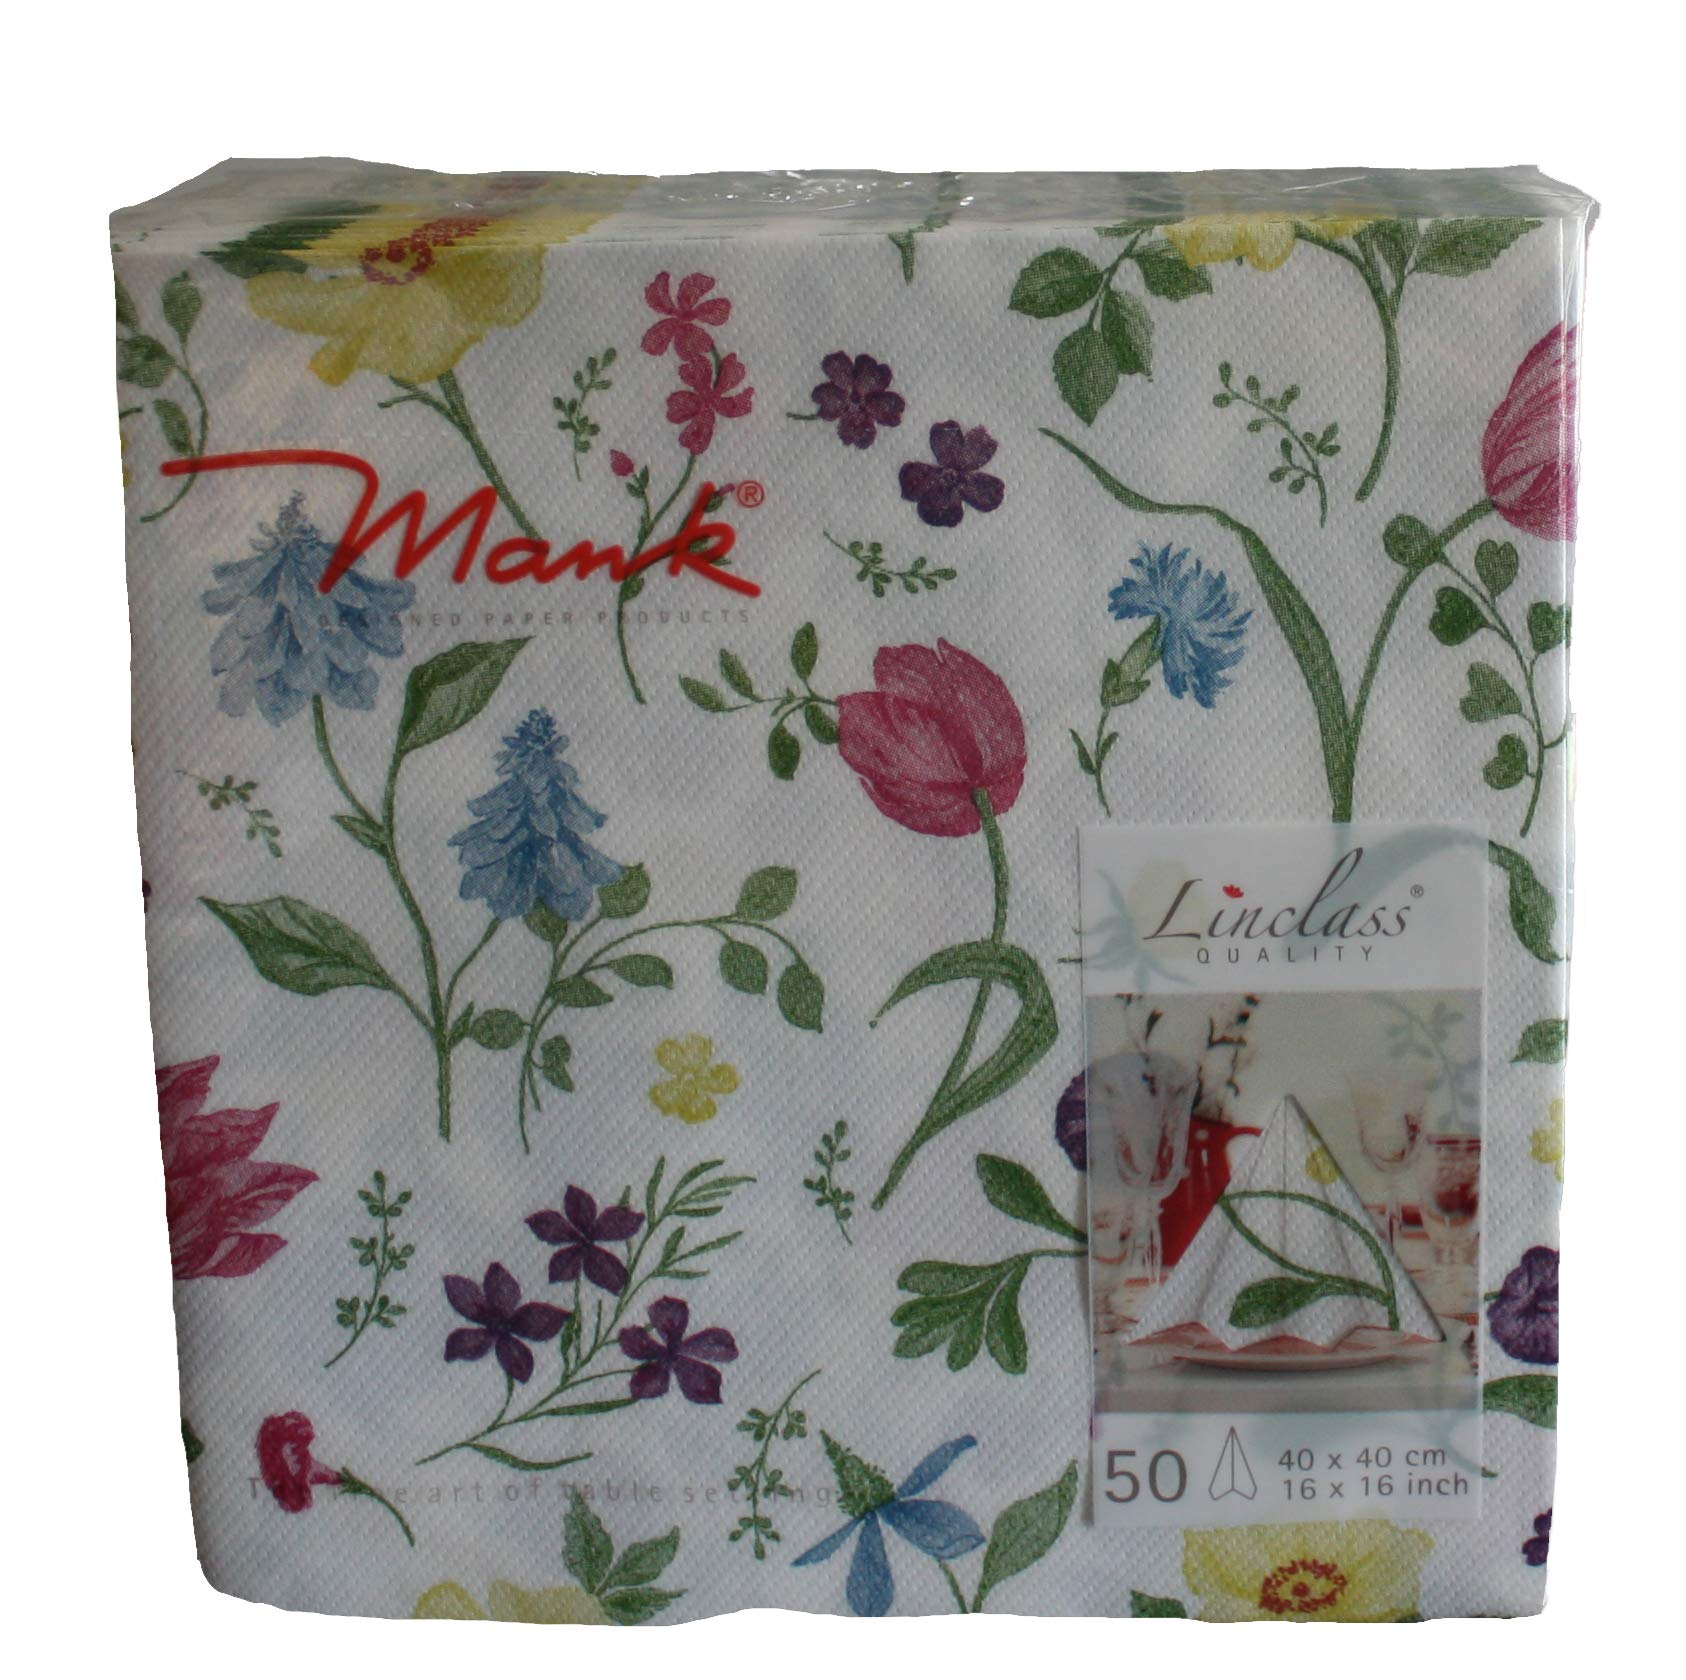 50 Large Linen Feel Paper Napkins 40 X 40 Cm Pretty Floral Buy Online In Aruba Mank Products In Aruba See Prices Reviews And Free Delivery Over 120 ƒ Desertcart